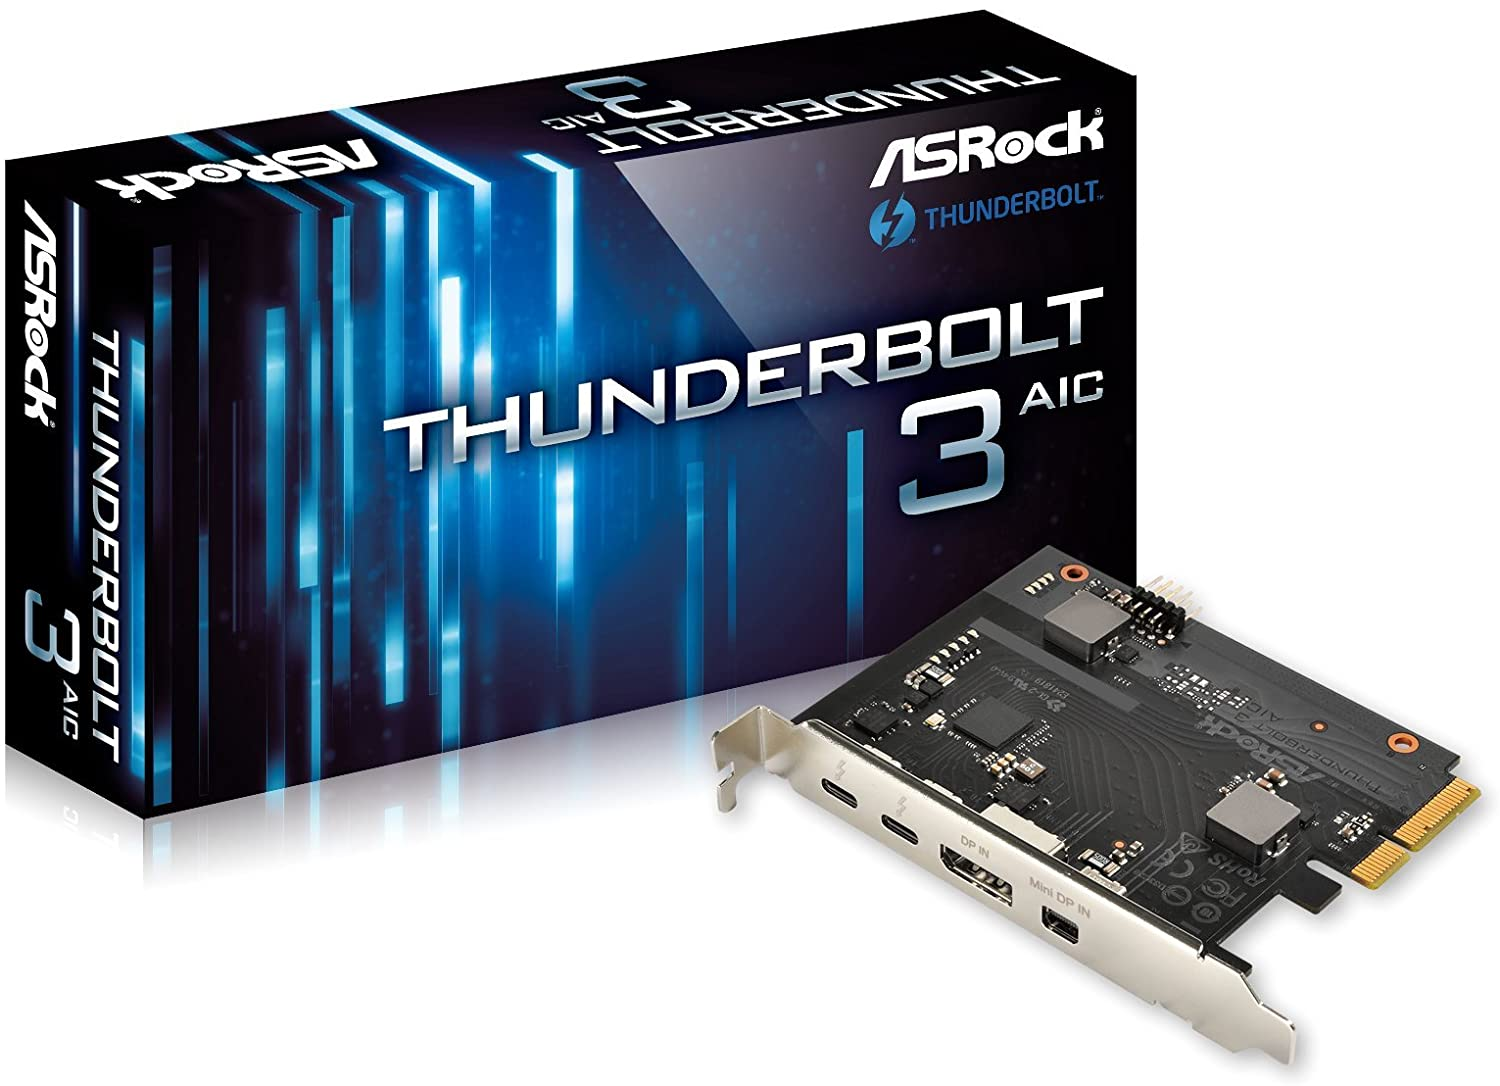 Asrock Thunderbolt 3 AIC PCI Express Card